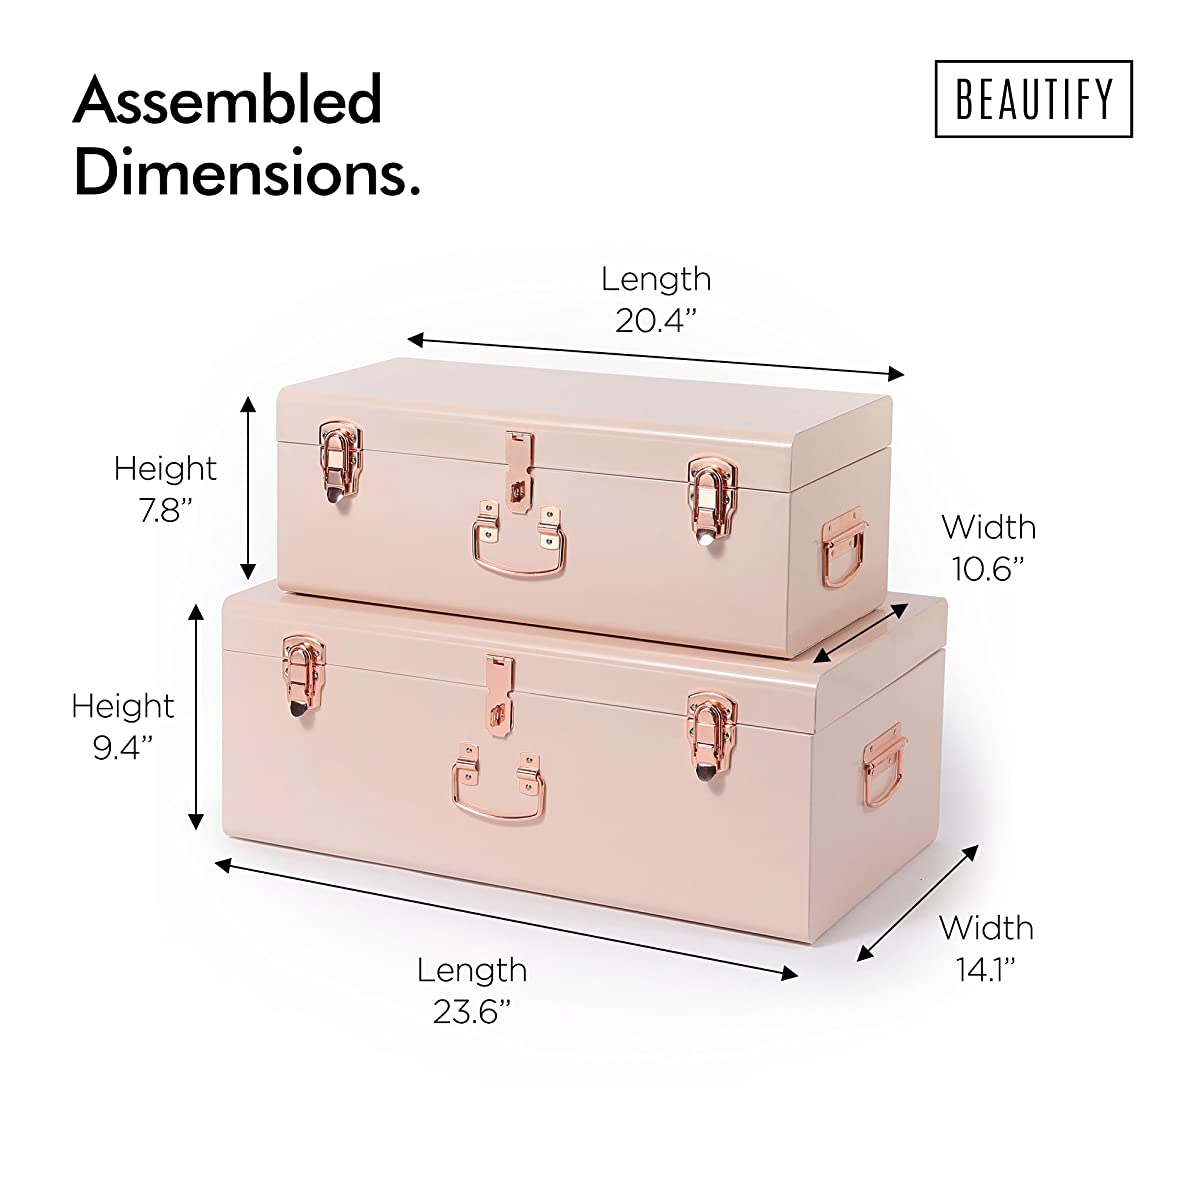 Beautify Blush Pink Vintage Style Steel Metal Storage Trunk Set Lockable and Decorative with Rose Gold Handles - College Dorm and Bedroom Footlocker Trunks